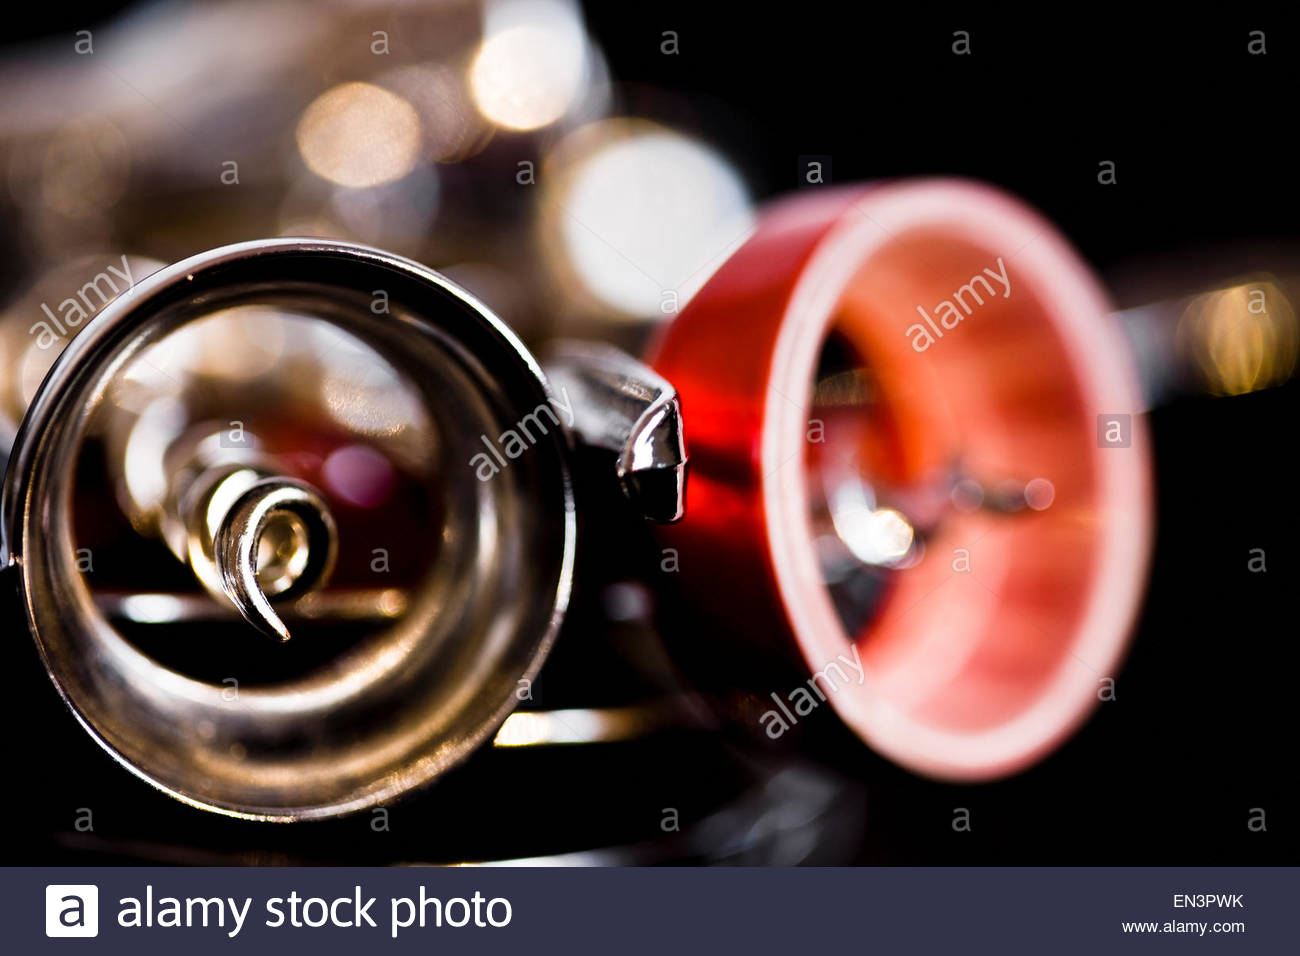 Close-up of corkscrews with highlights on dark background - Stock Image